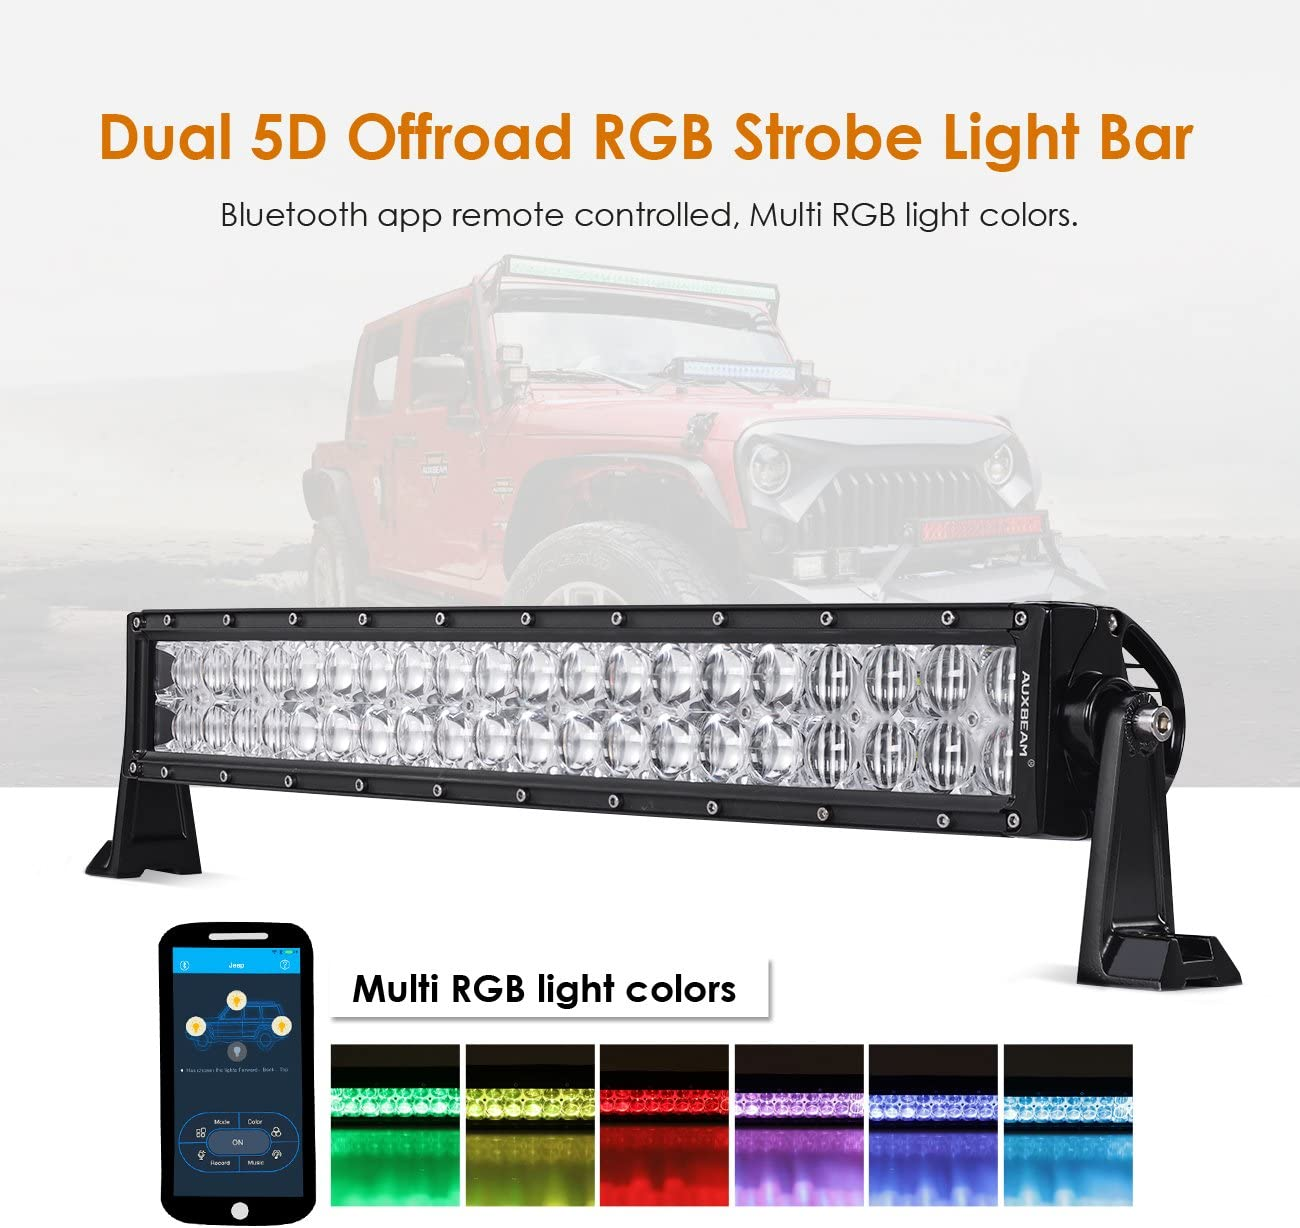 Auxbeam 22 2021 new Inch LED Light Bar RGB 5D Multi-Color Curved Today's only